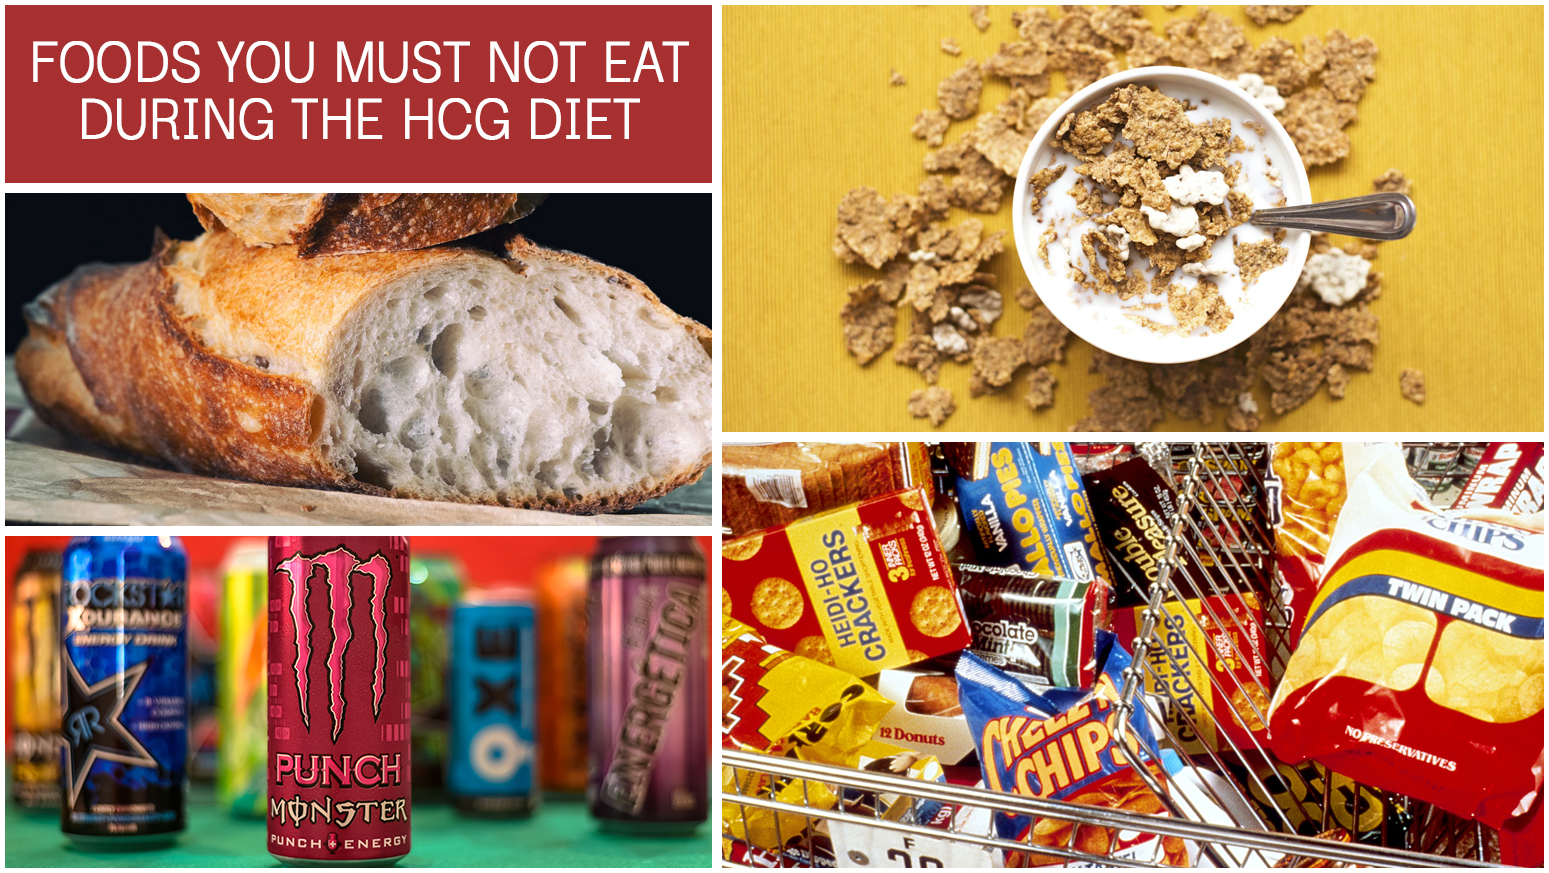 FOODS YOU MUST NOT EAT DURING THE HCG DIET